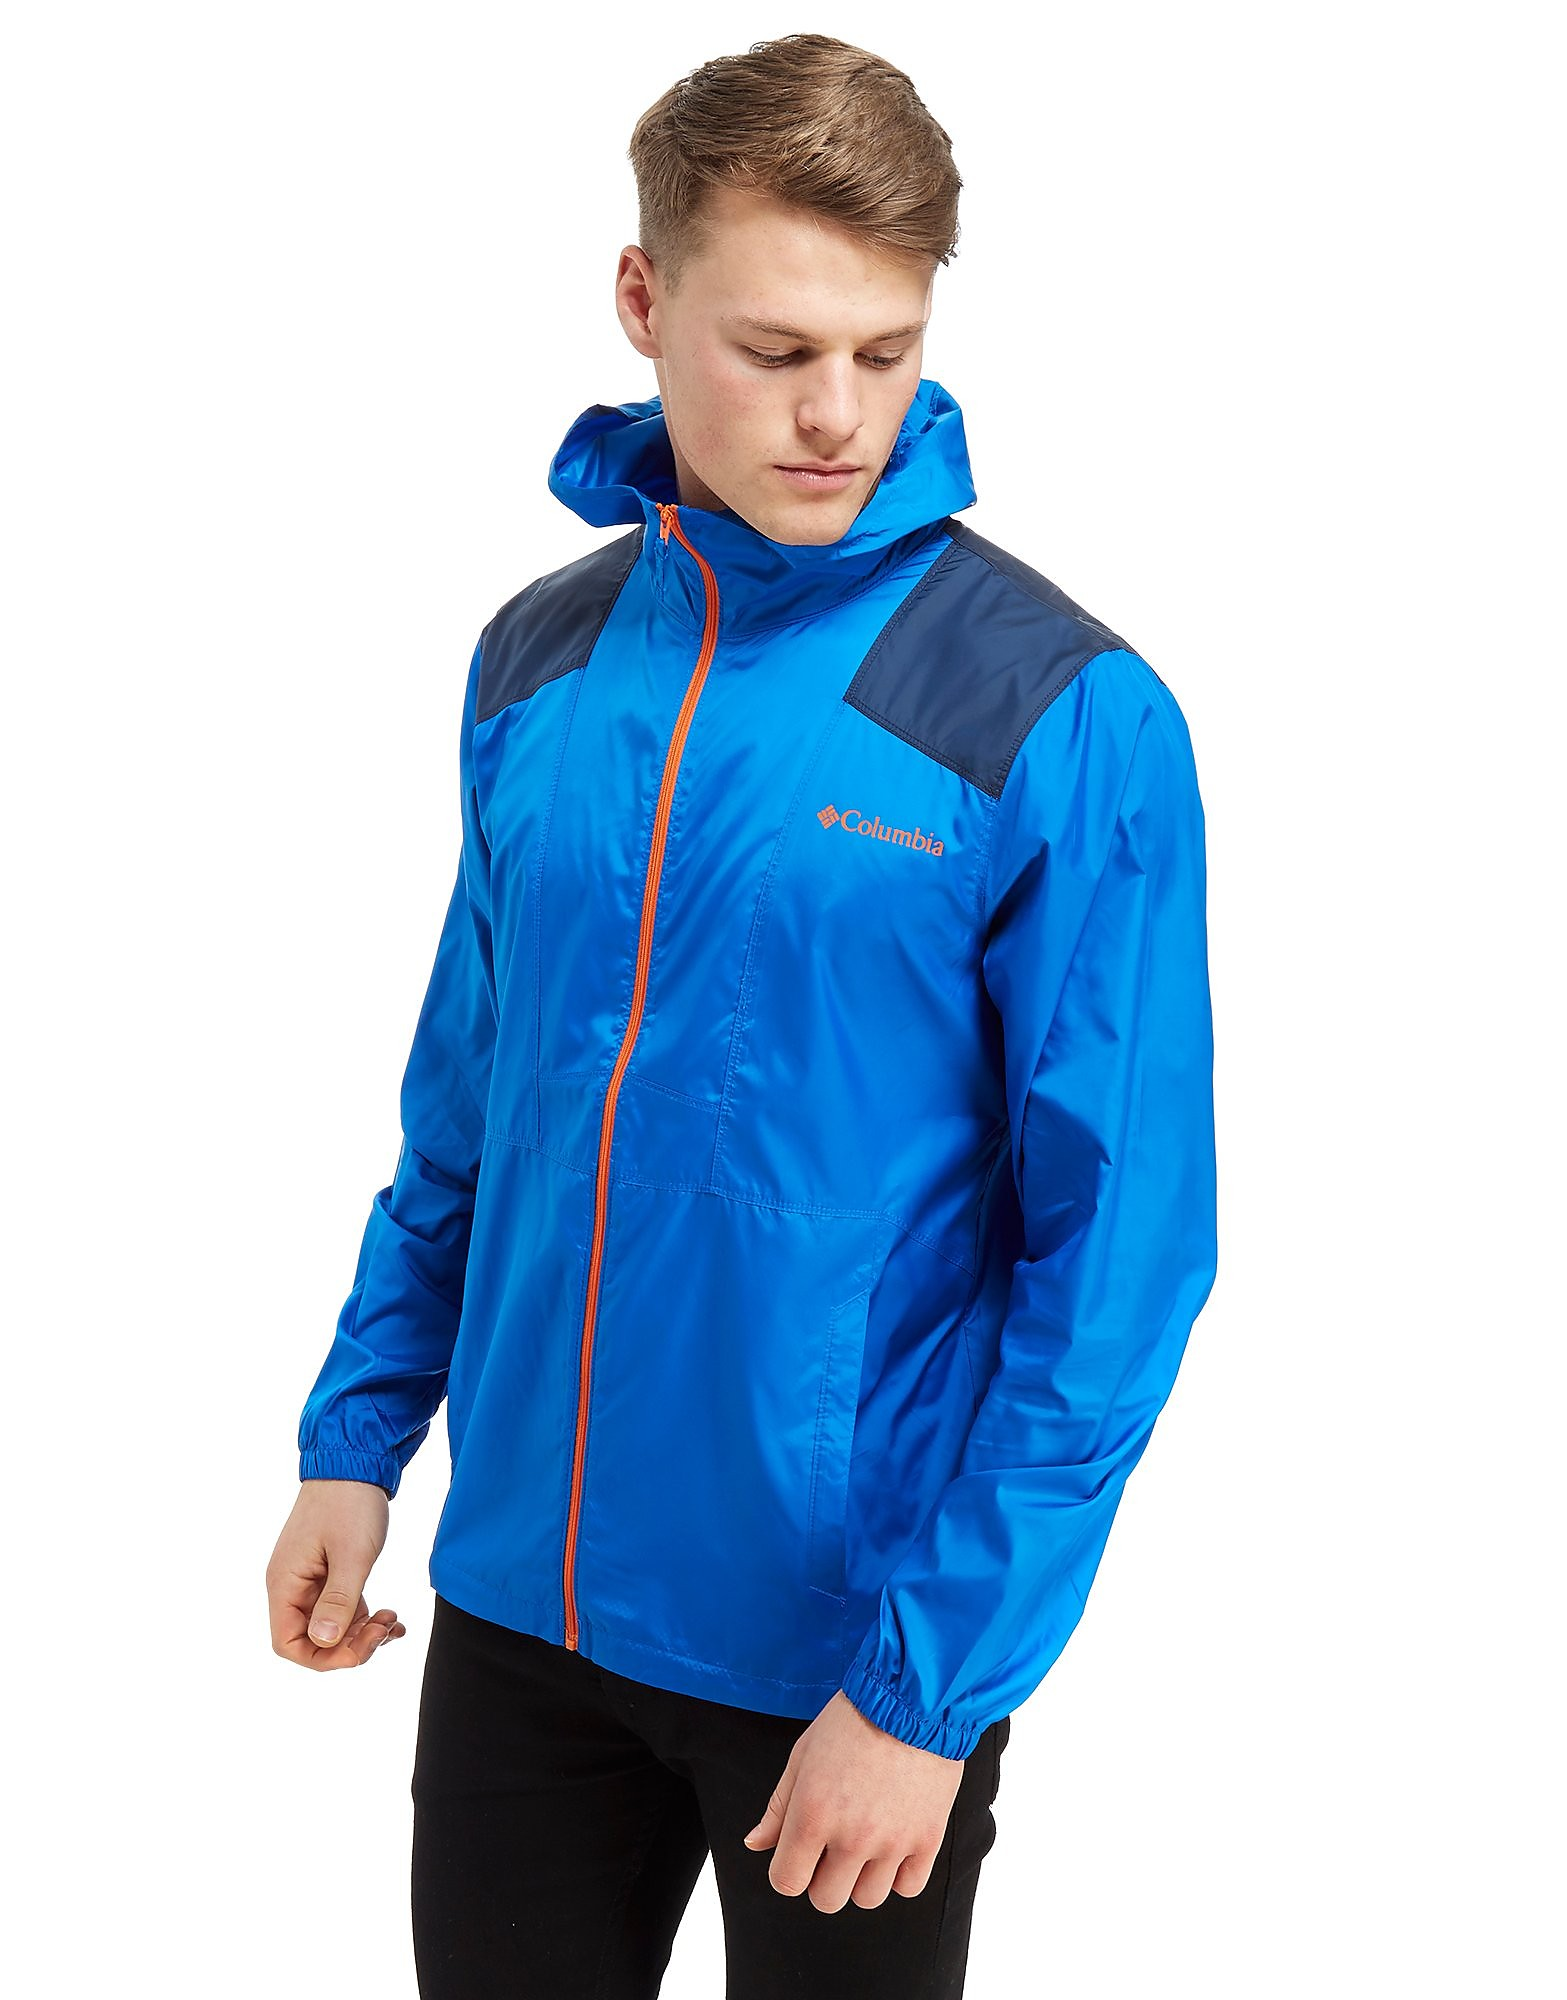 Columbia Flashback Lightweight Jacket